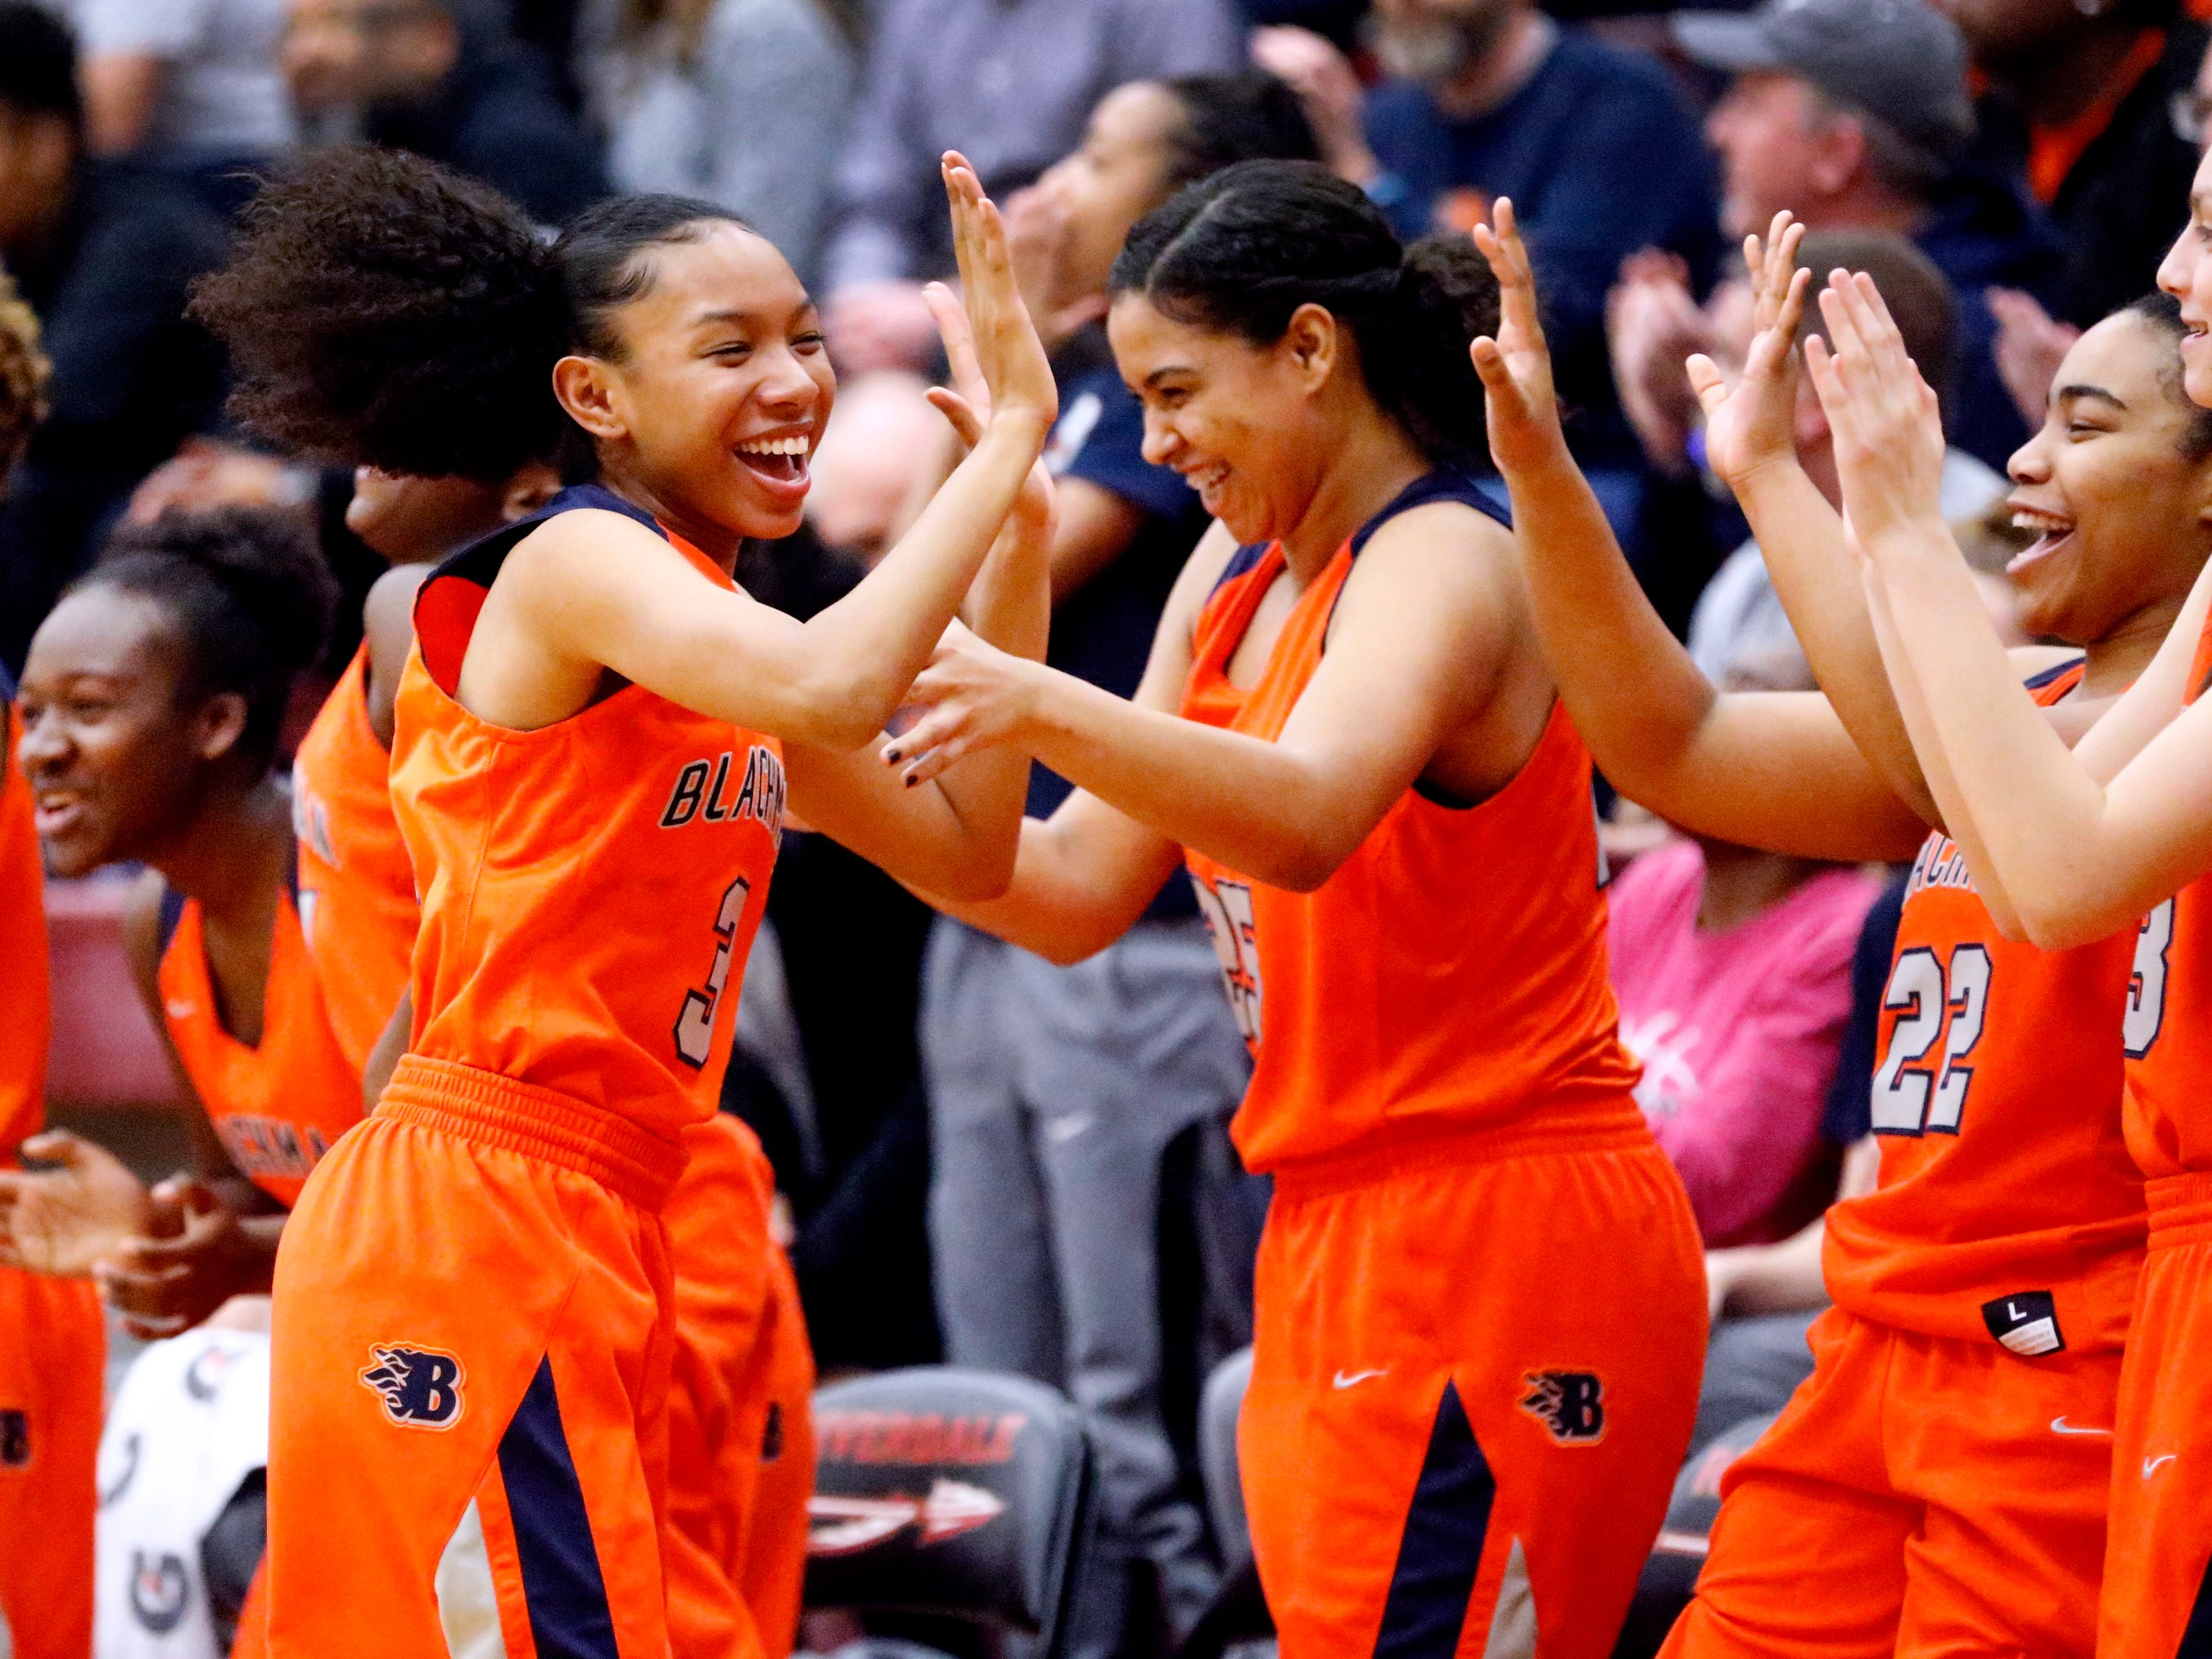 Blackman's Nya Caruthers (3) celebrates a three point basket made by Blackman's Jaida Bond (10) on Tuesday Jan. 8, 2019 during a game against Riverdale.